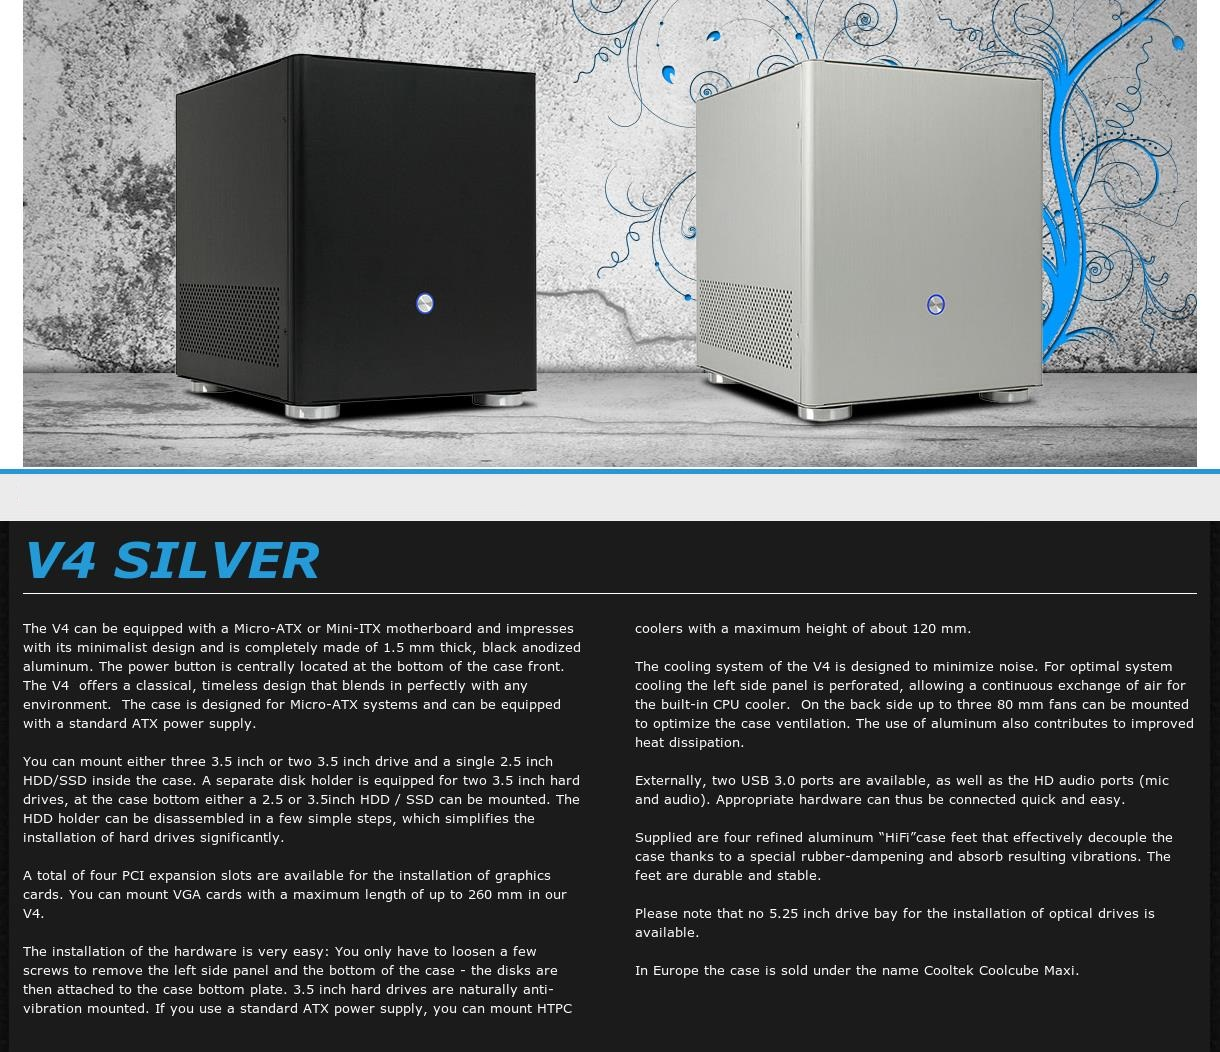 A large marketing image providing additional information about the product Jonsbo V4 Silver mATX Case - Additional alt info not provided